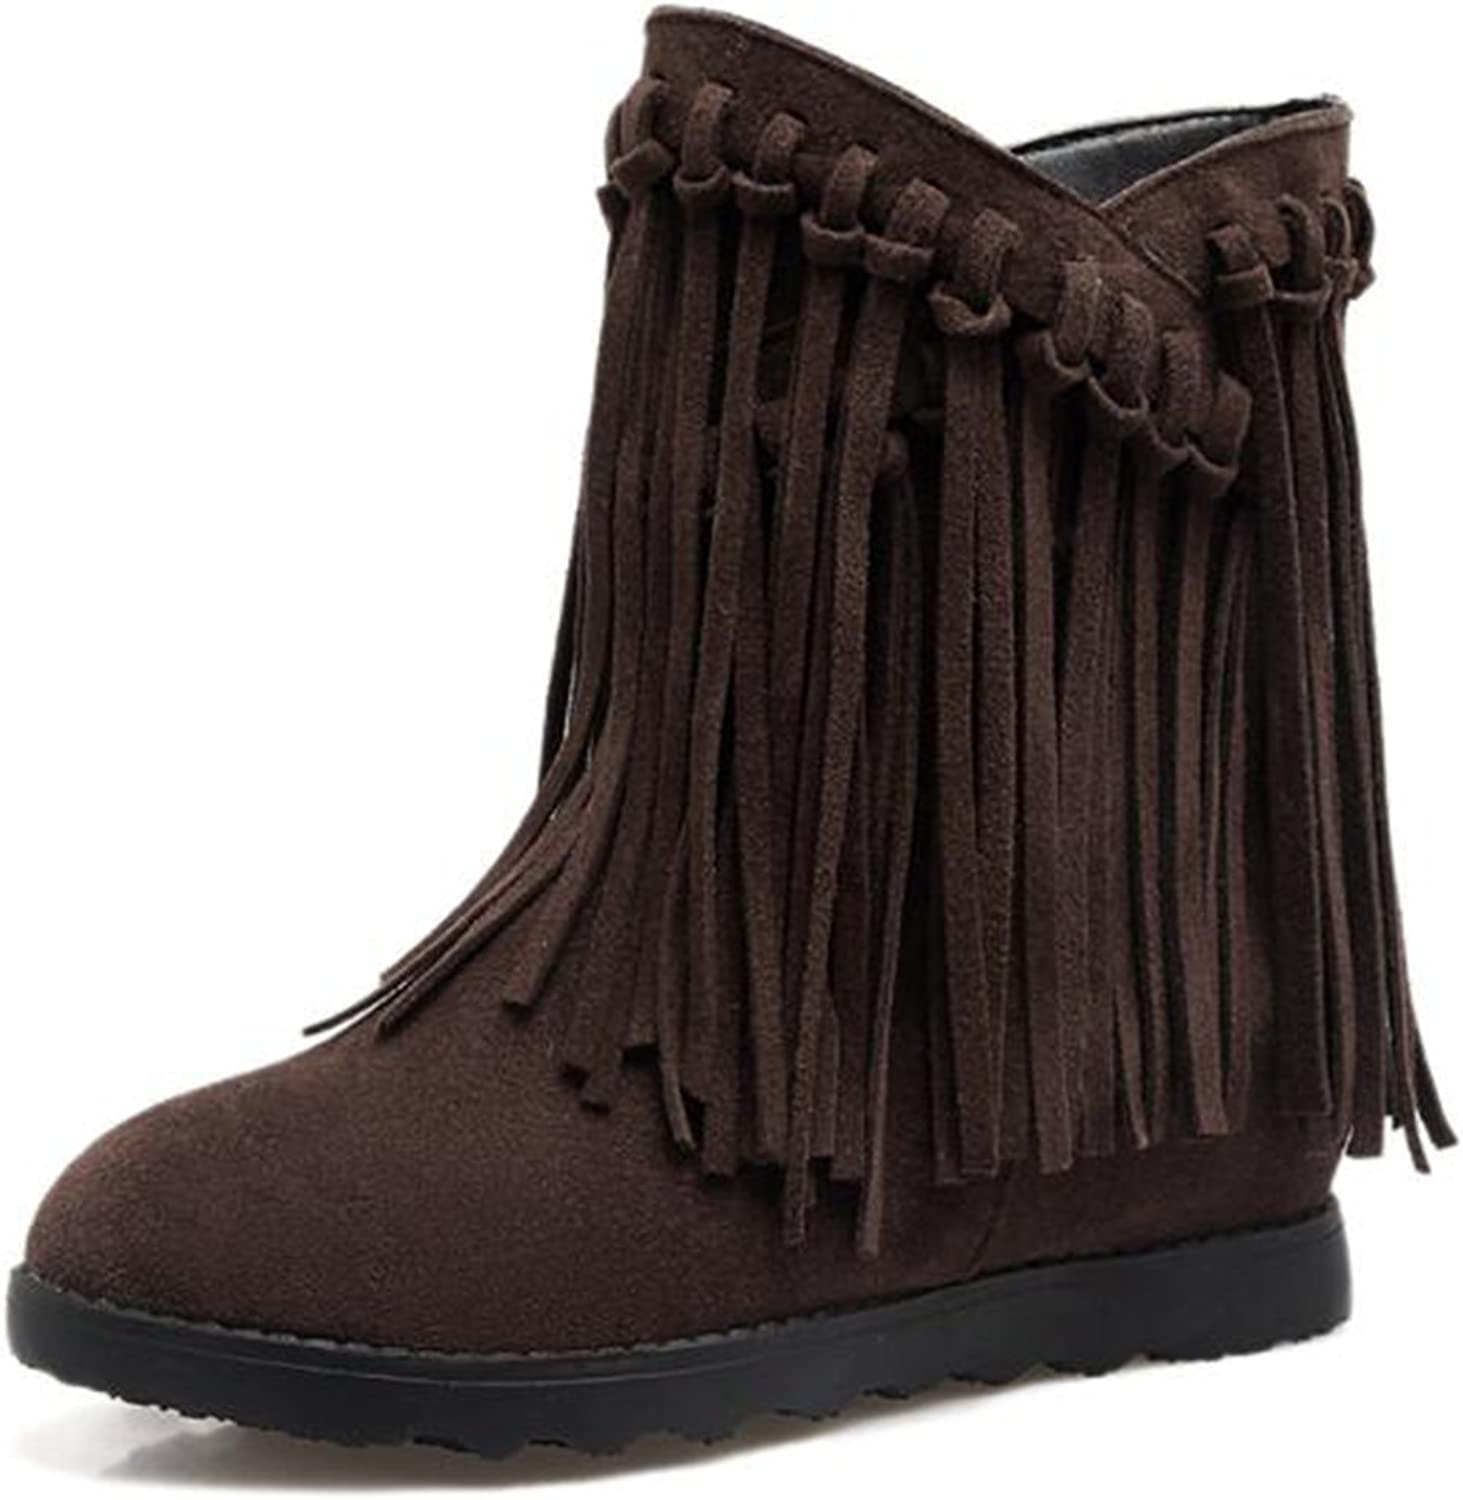 IDIFU Women's Retro Fringes Mid Wedge Heels Hidden Inside Frosted Pull On Ankle Boots